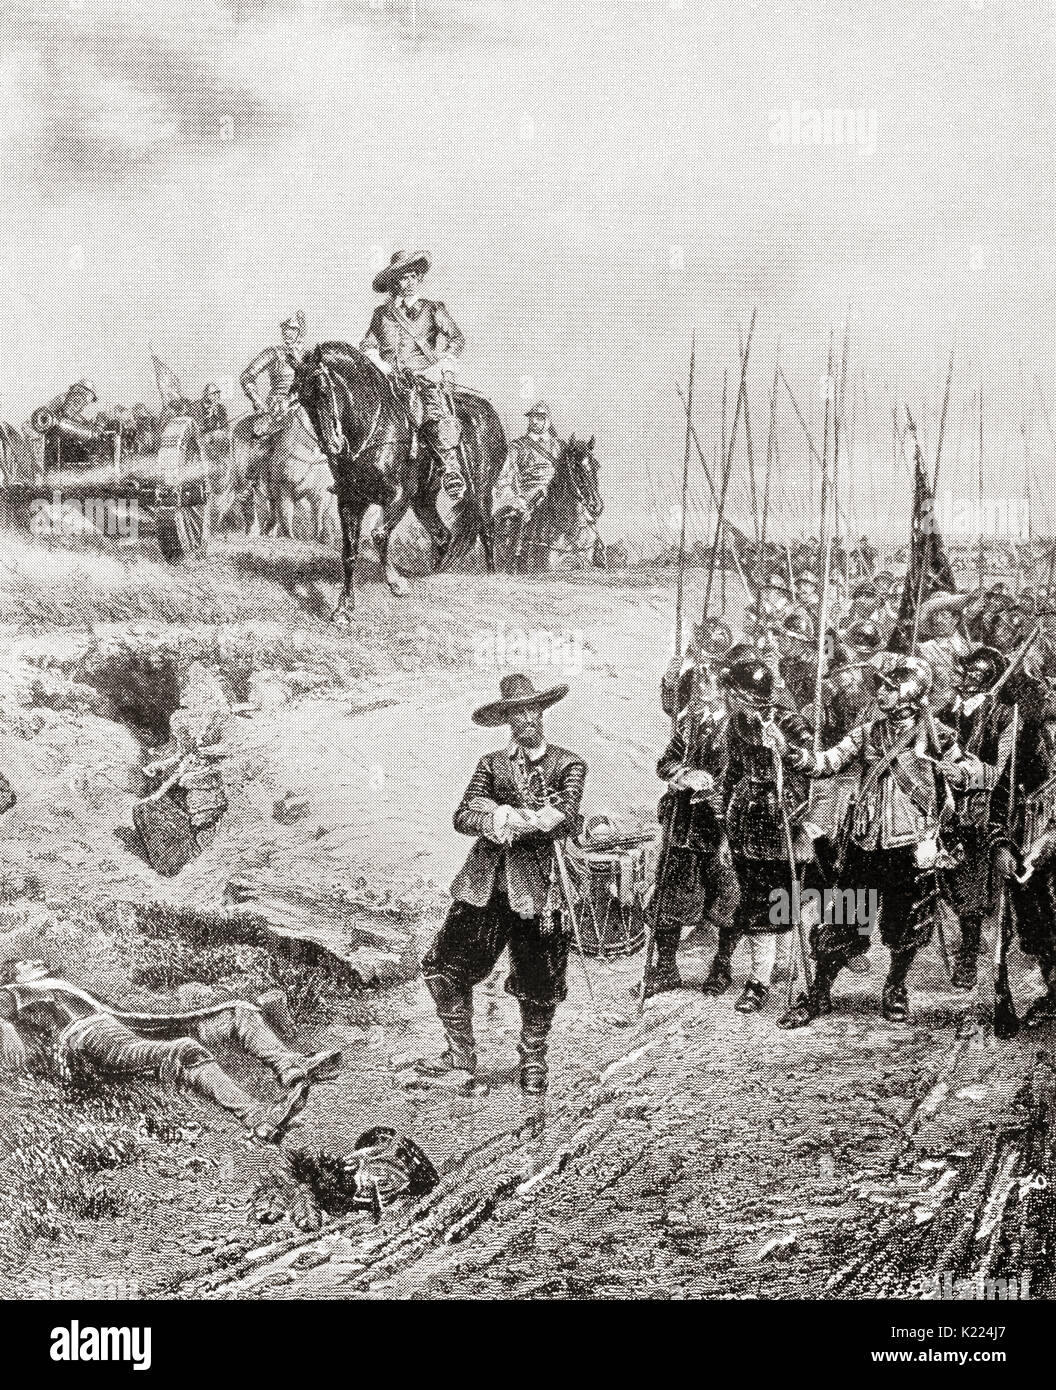 Oliver Cromwell at The Battle of Marston Moor, 2 July 1644, during the First English Civil War.  Oliver Cromwell, 1599 – 1658. English military and political leader and later Lord Protector of the Commonwealth of England, Scotland, and Ireland.  From International Library of Famous Literature, published c.1900 - Stock Image